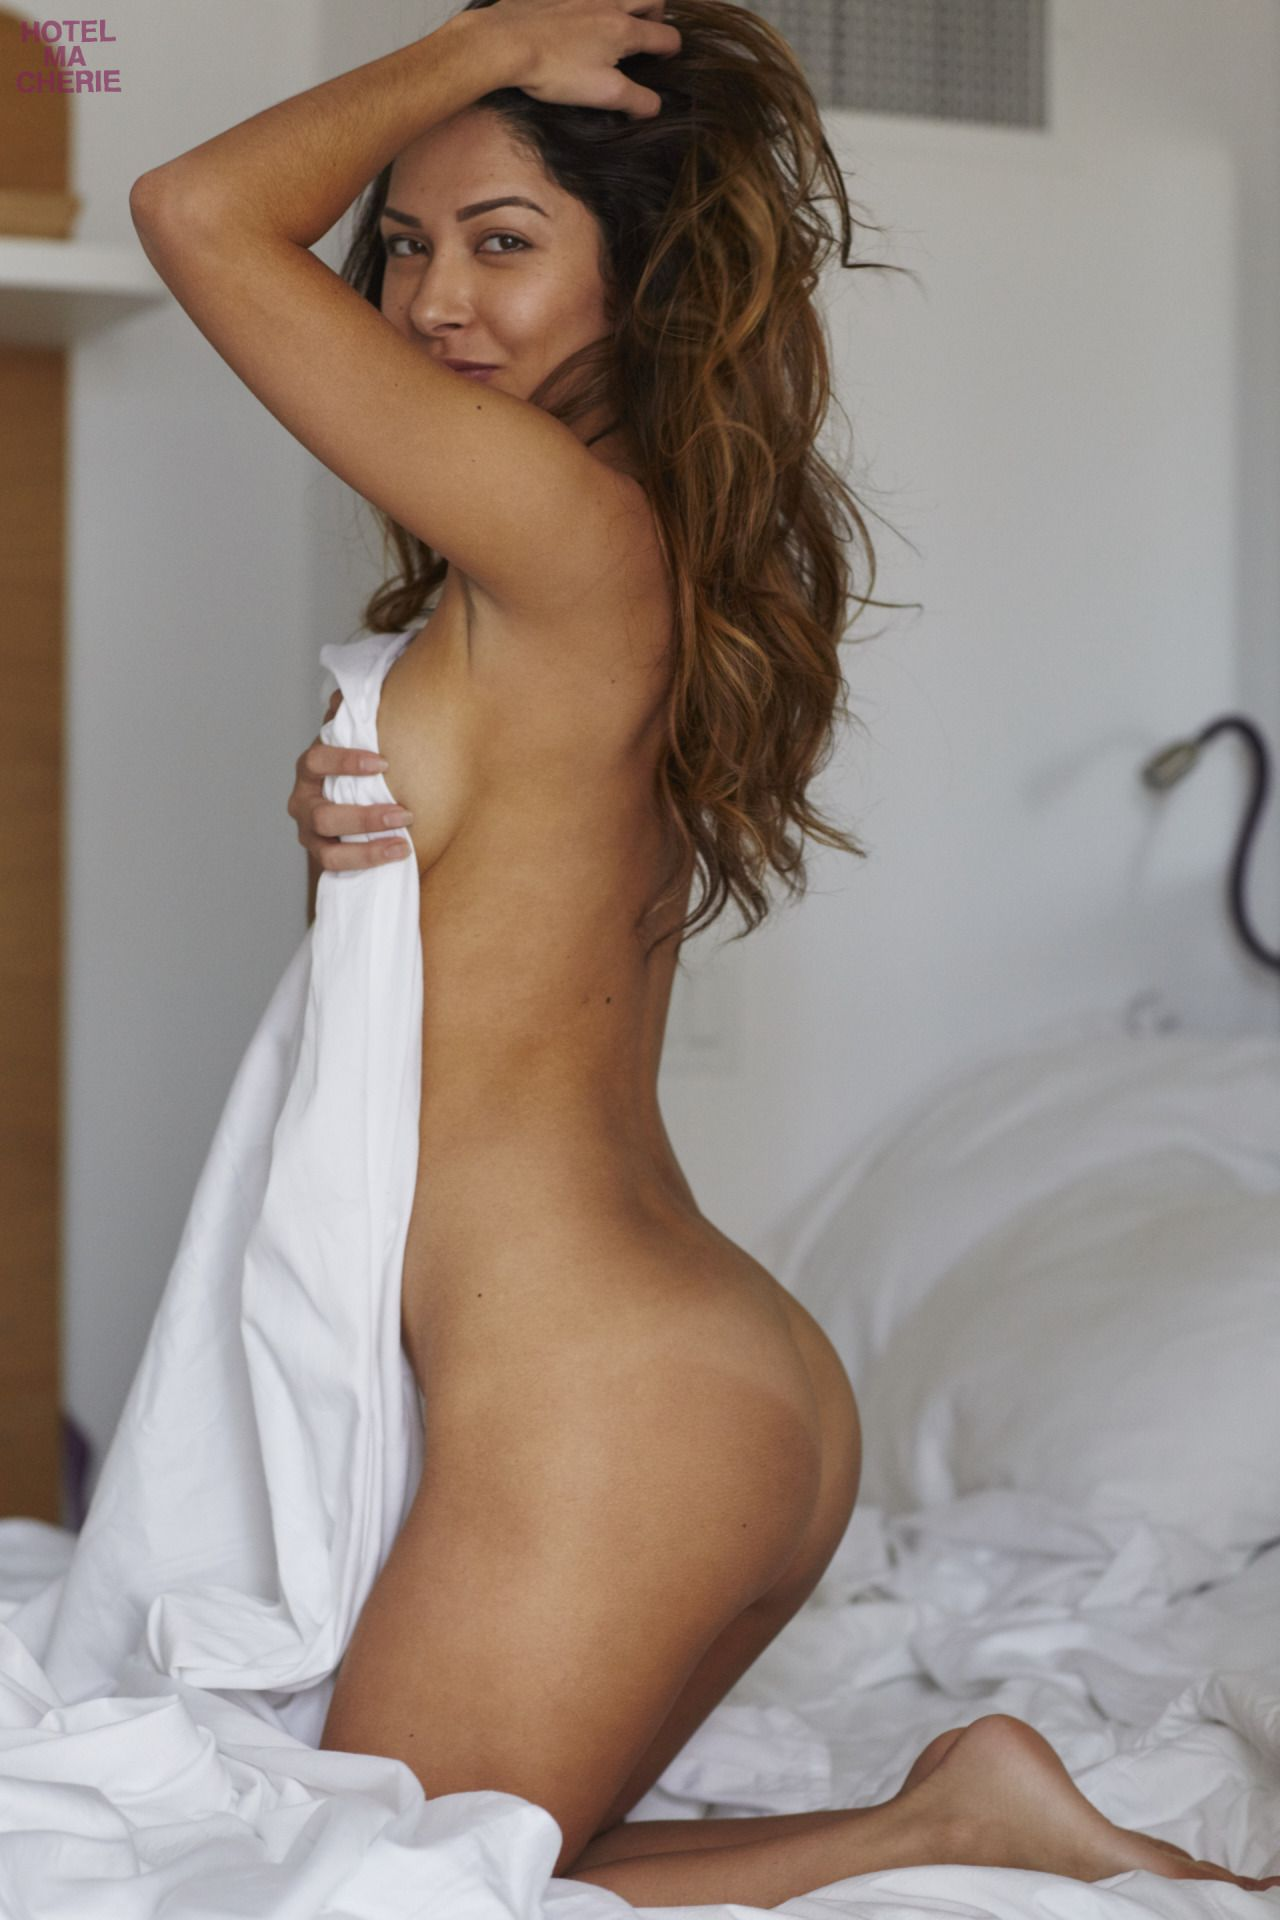 kat kelley nude photos – #thefappening